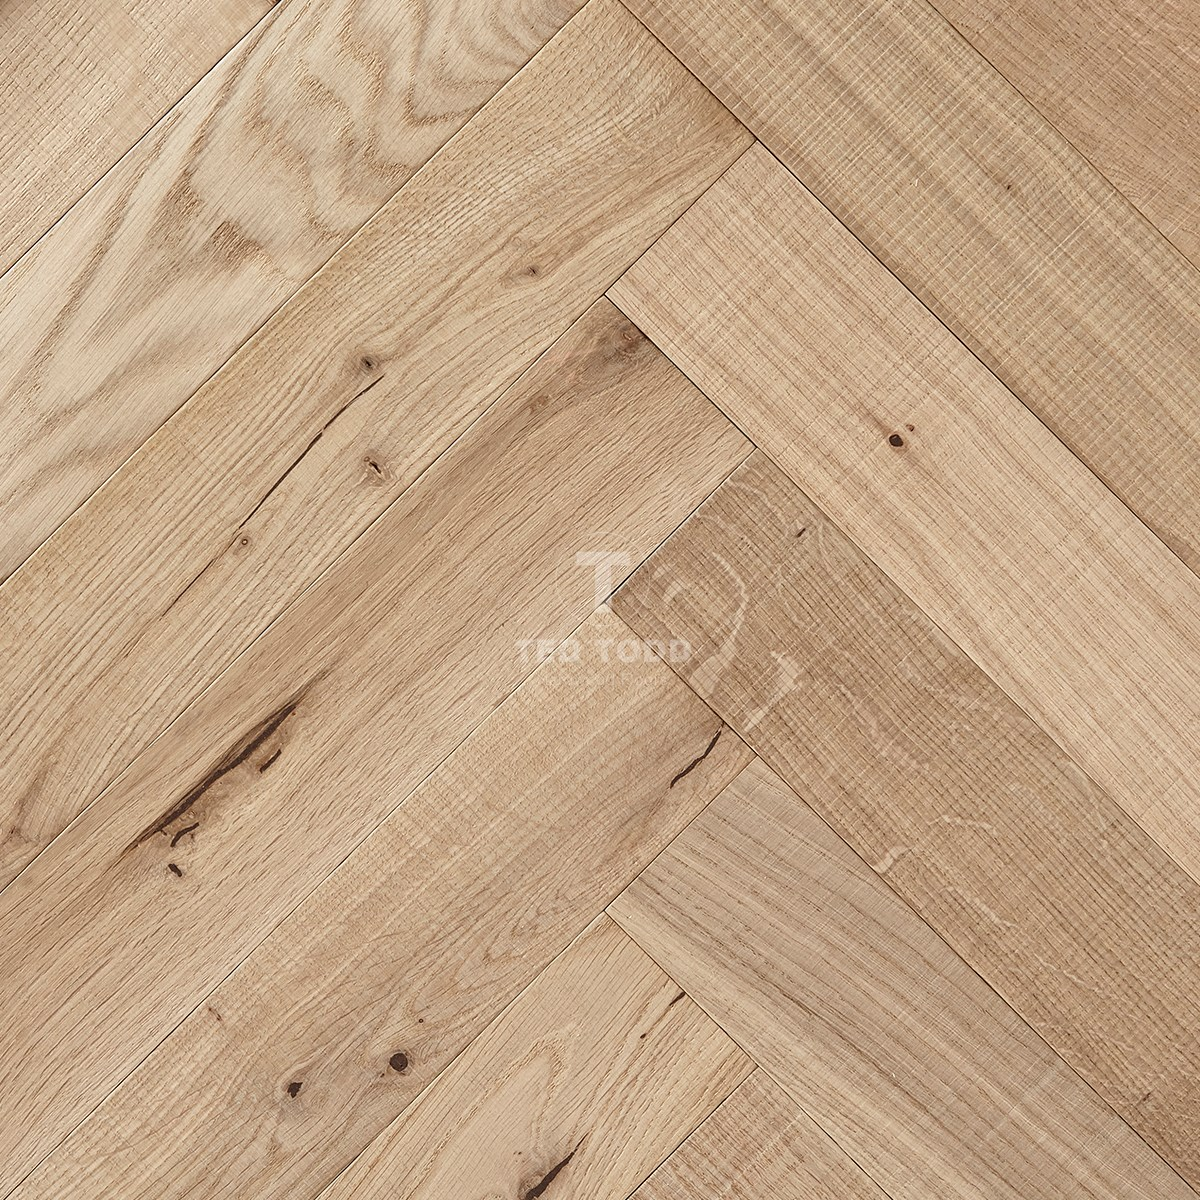 Kentish Herringbone Woodworks By Ted Todd Engineered